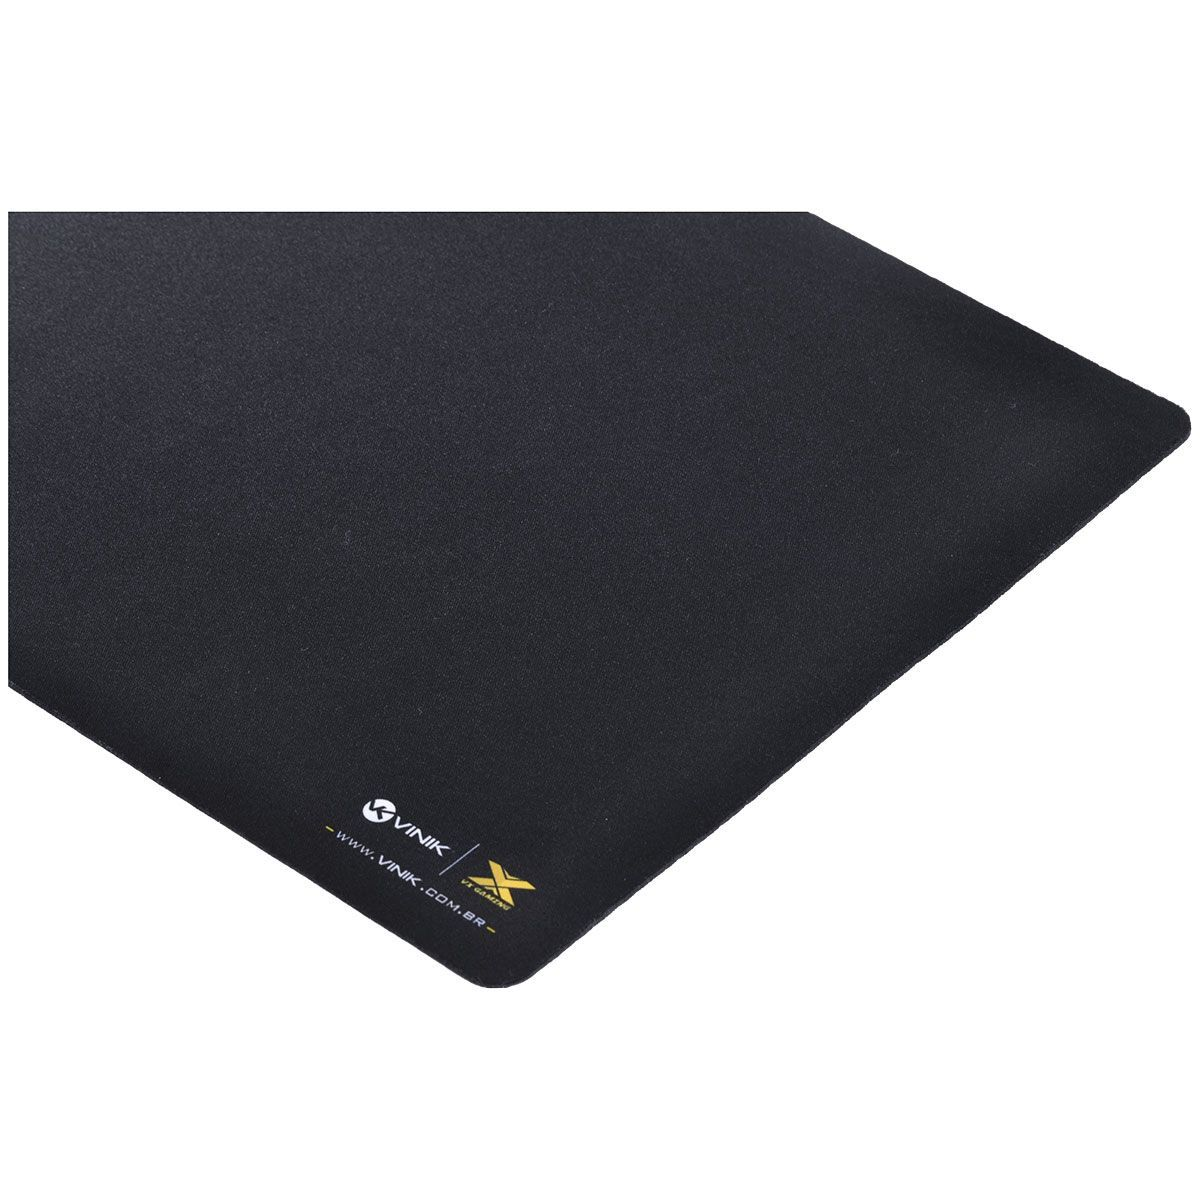 MOUSE PAD VX GAMING VINIK STANDARD - 320X270X2MM